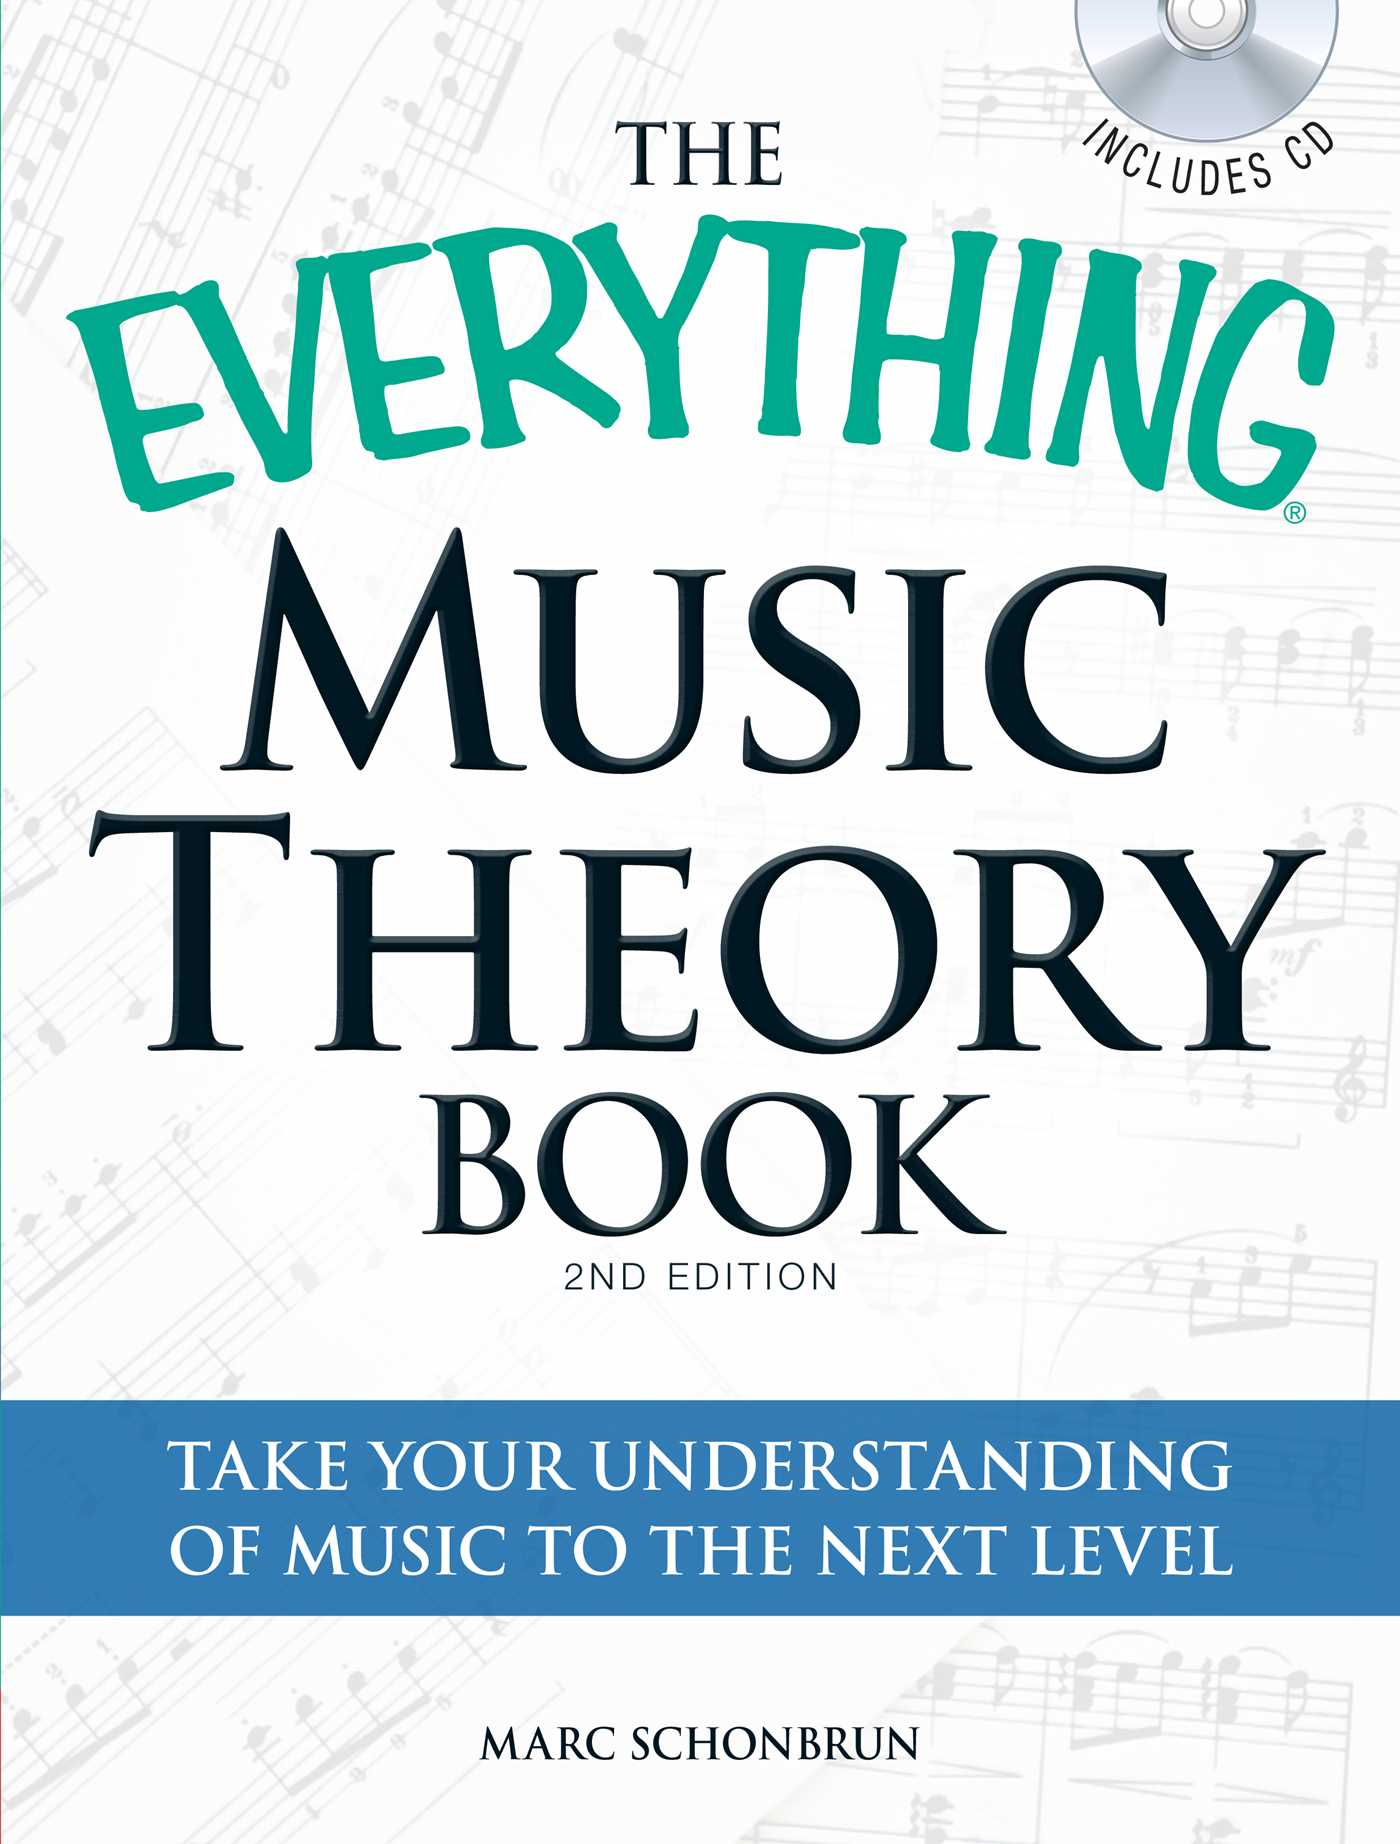 Image Result For The Everything Music Theory Book By Marc Schonbrun